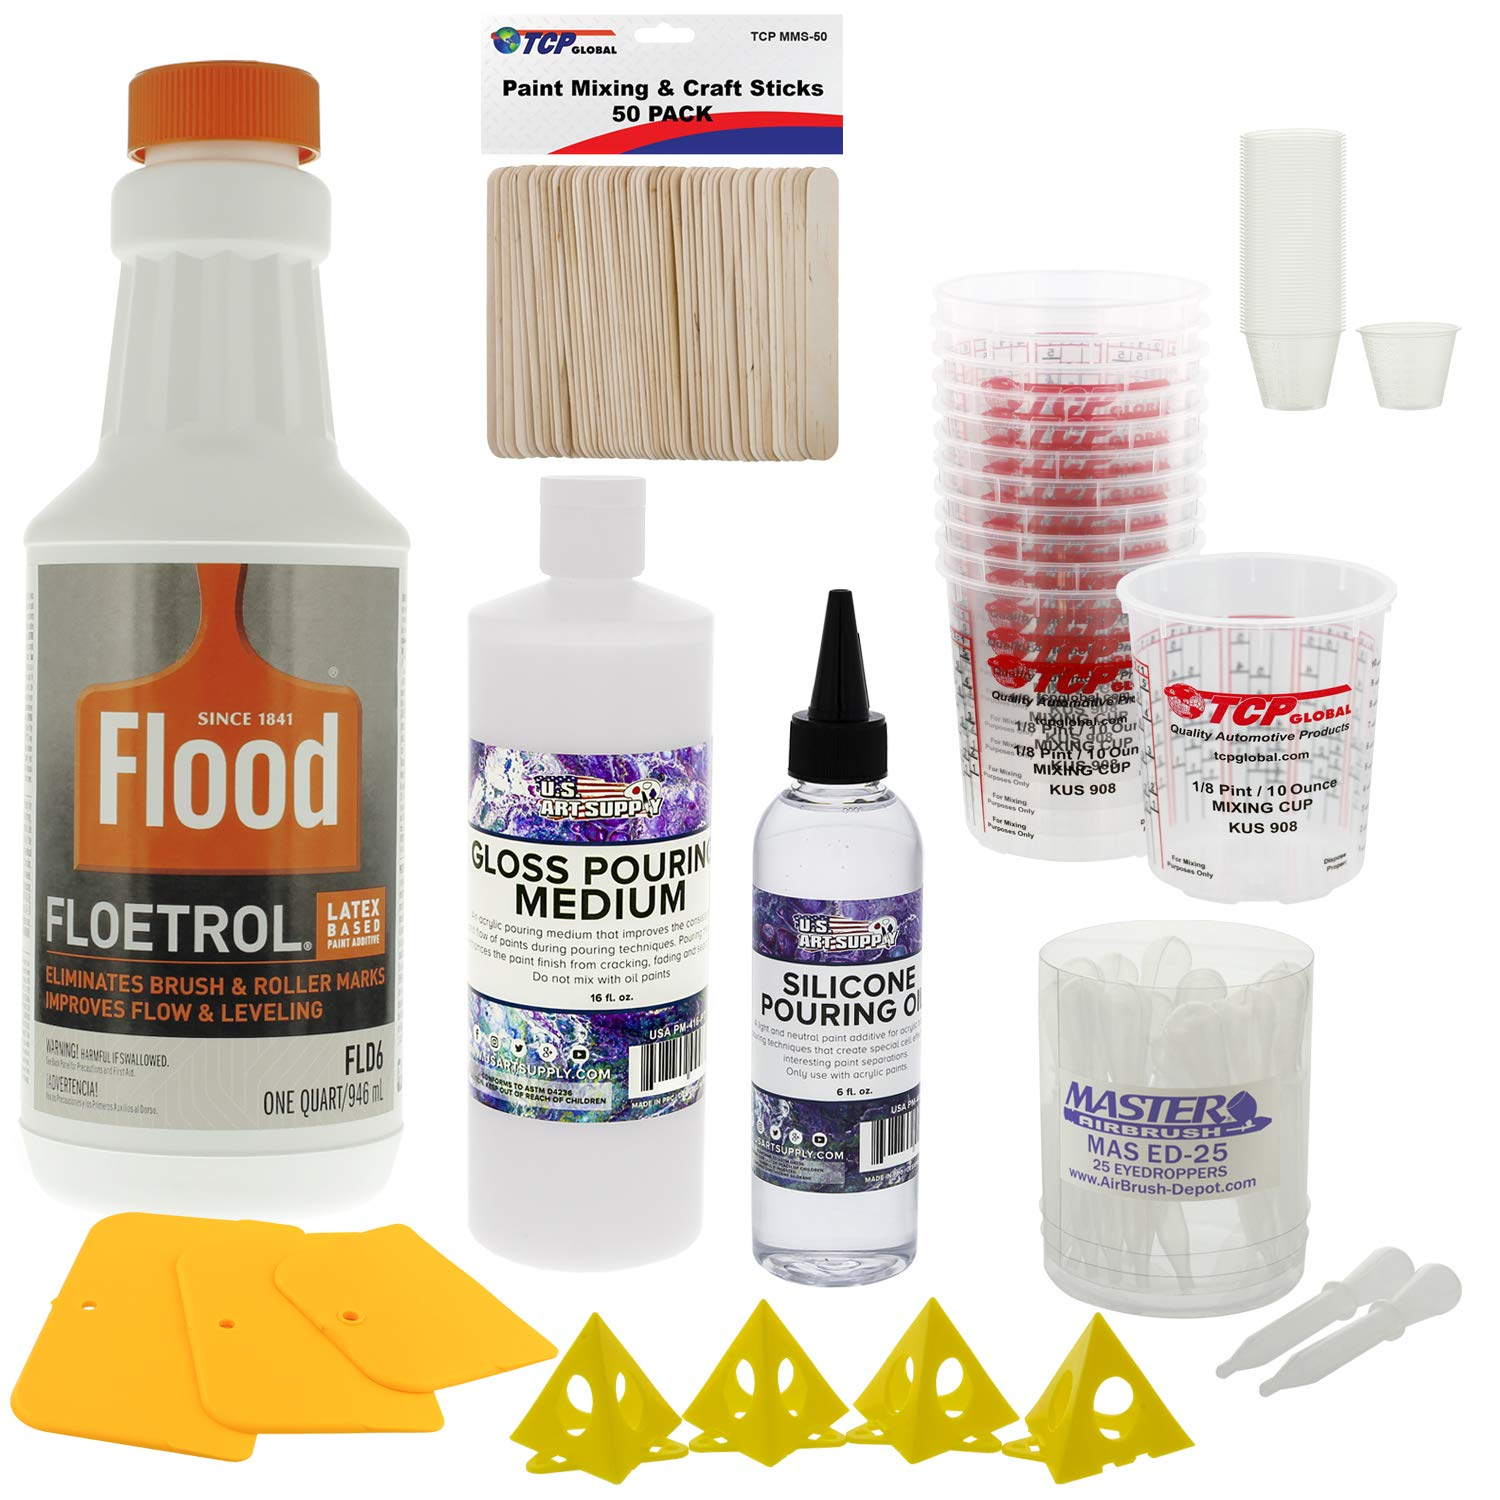 U.S. Art Supply - 1 Quart Floetrol Additive Pouring Supply Paint Medium Deluxe Kit for Mixing, Stain, Epoxy, Resin - Silicone Oil, Plastic Cups, Mini Painting Stands, Sticks, Spreaders by US Art Supply